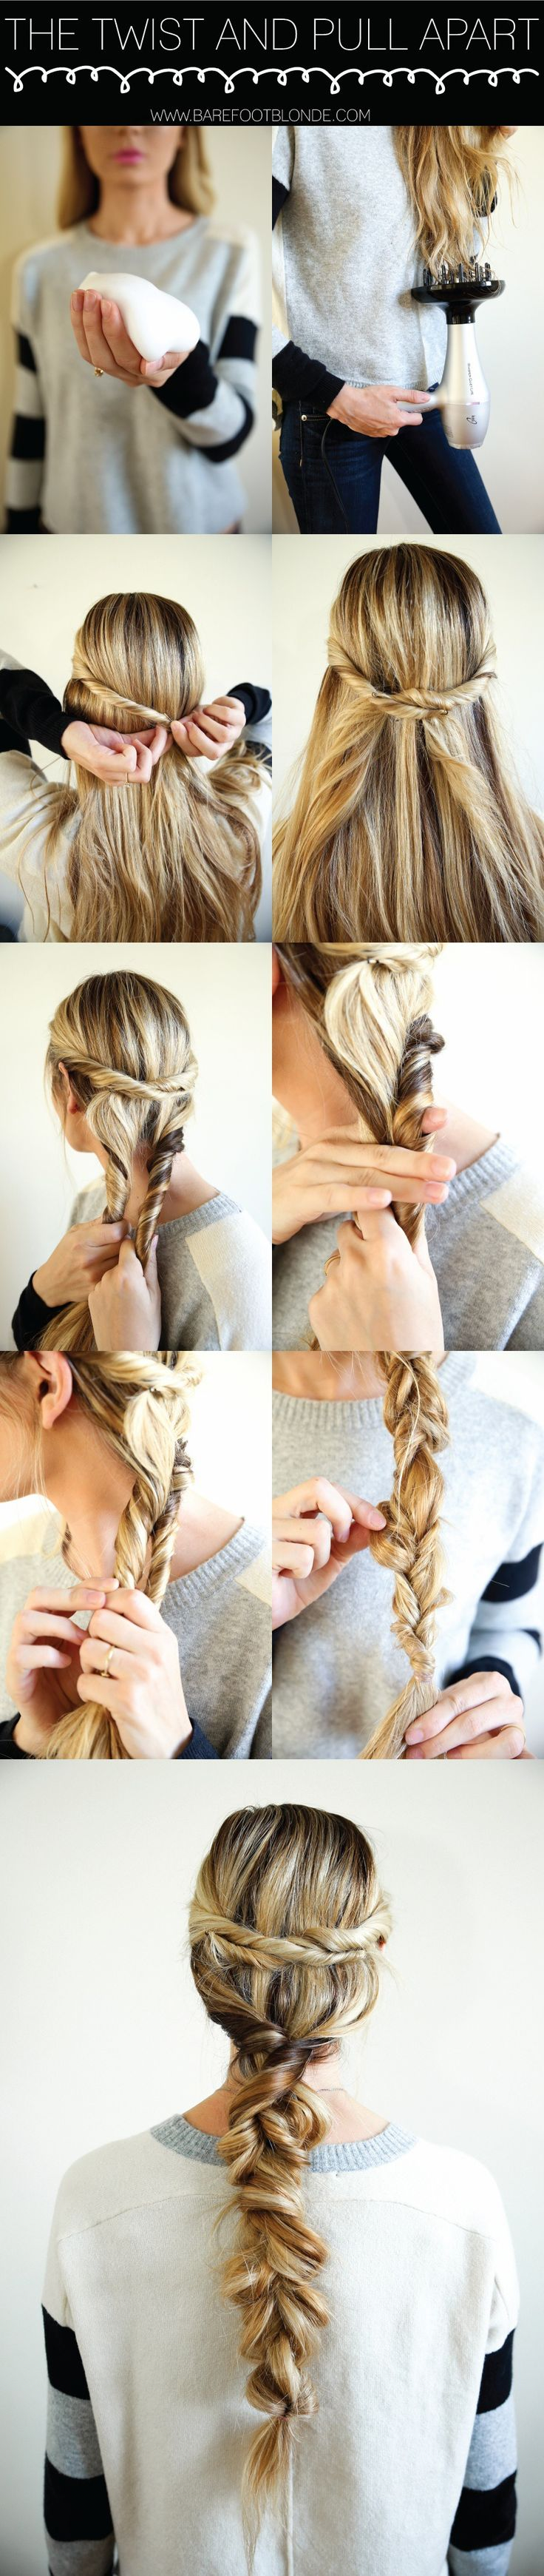 Twist and Pull Apart Braid